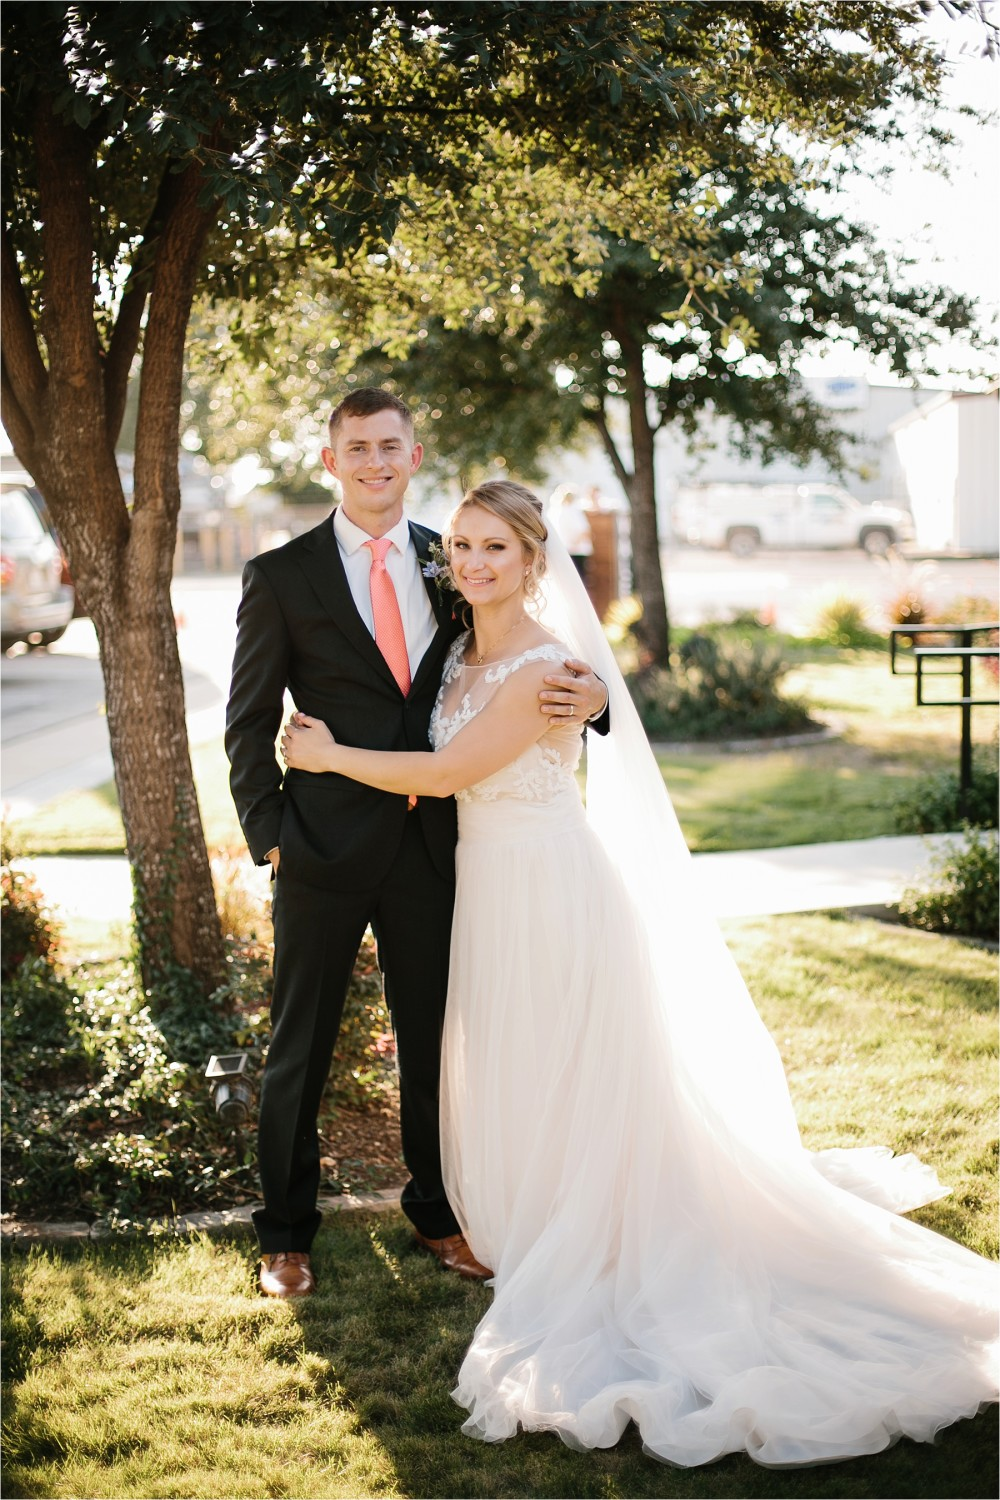 a-riffle-paper-co-inspired-color-pallete-wedding-at-mopac-event-center-in-fort-worth-tx-by-north-texas-wedding-photographer-rachel-meagan-photography-_-067